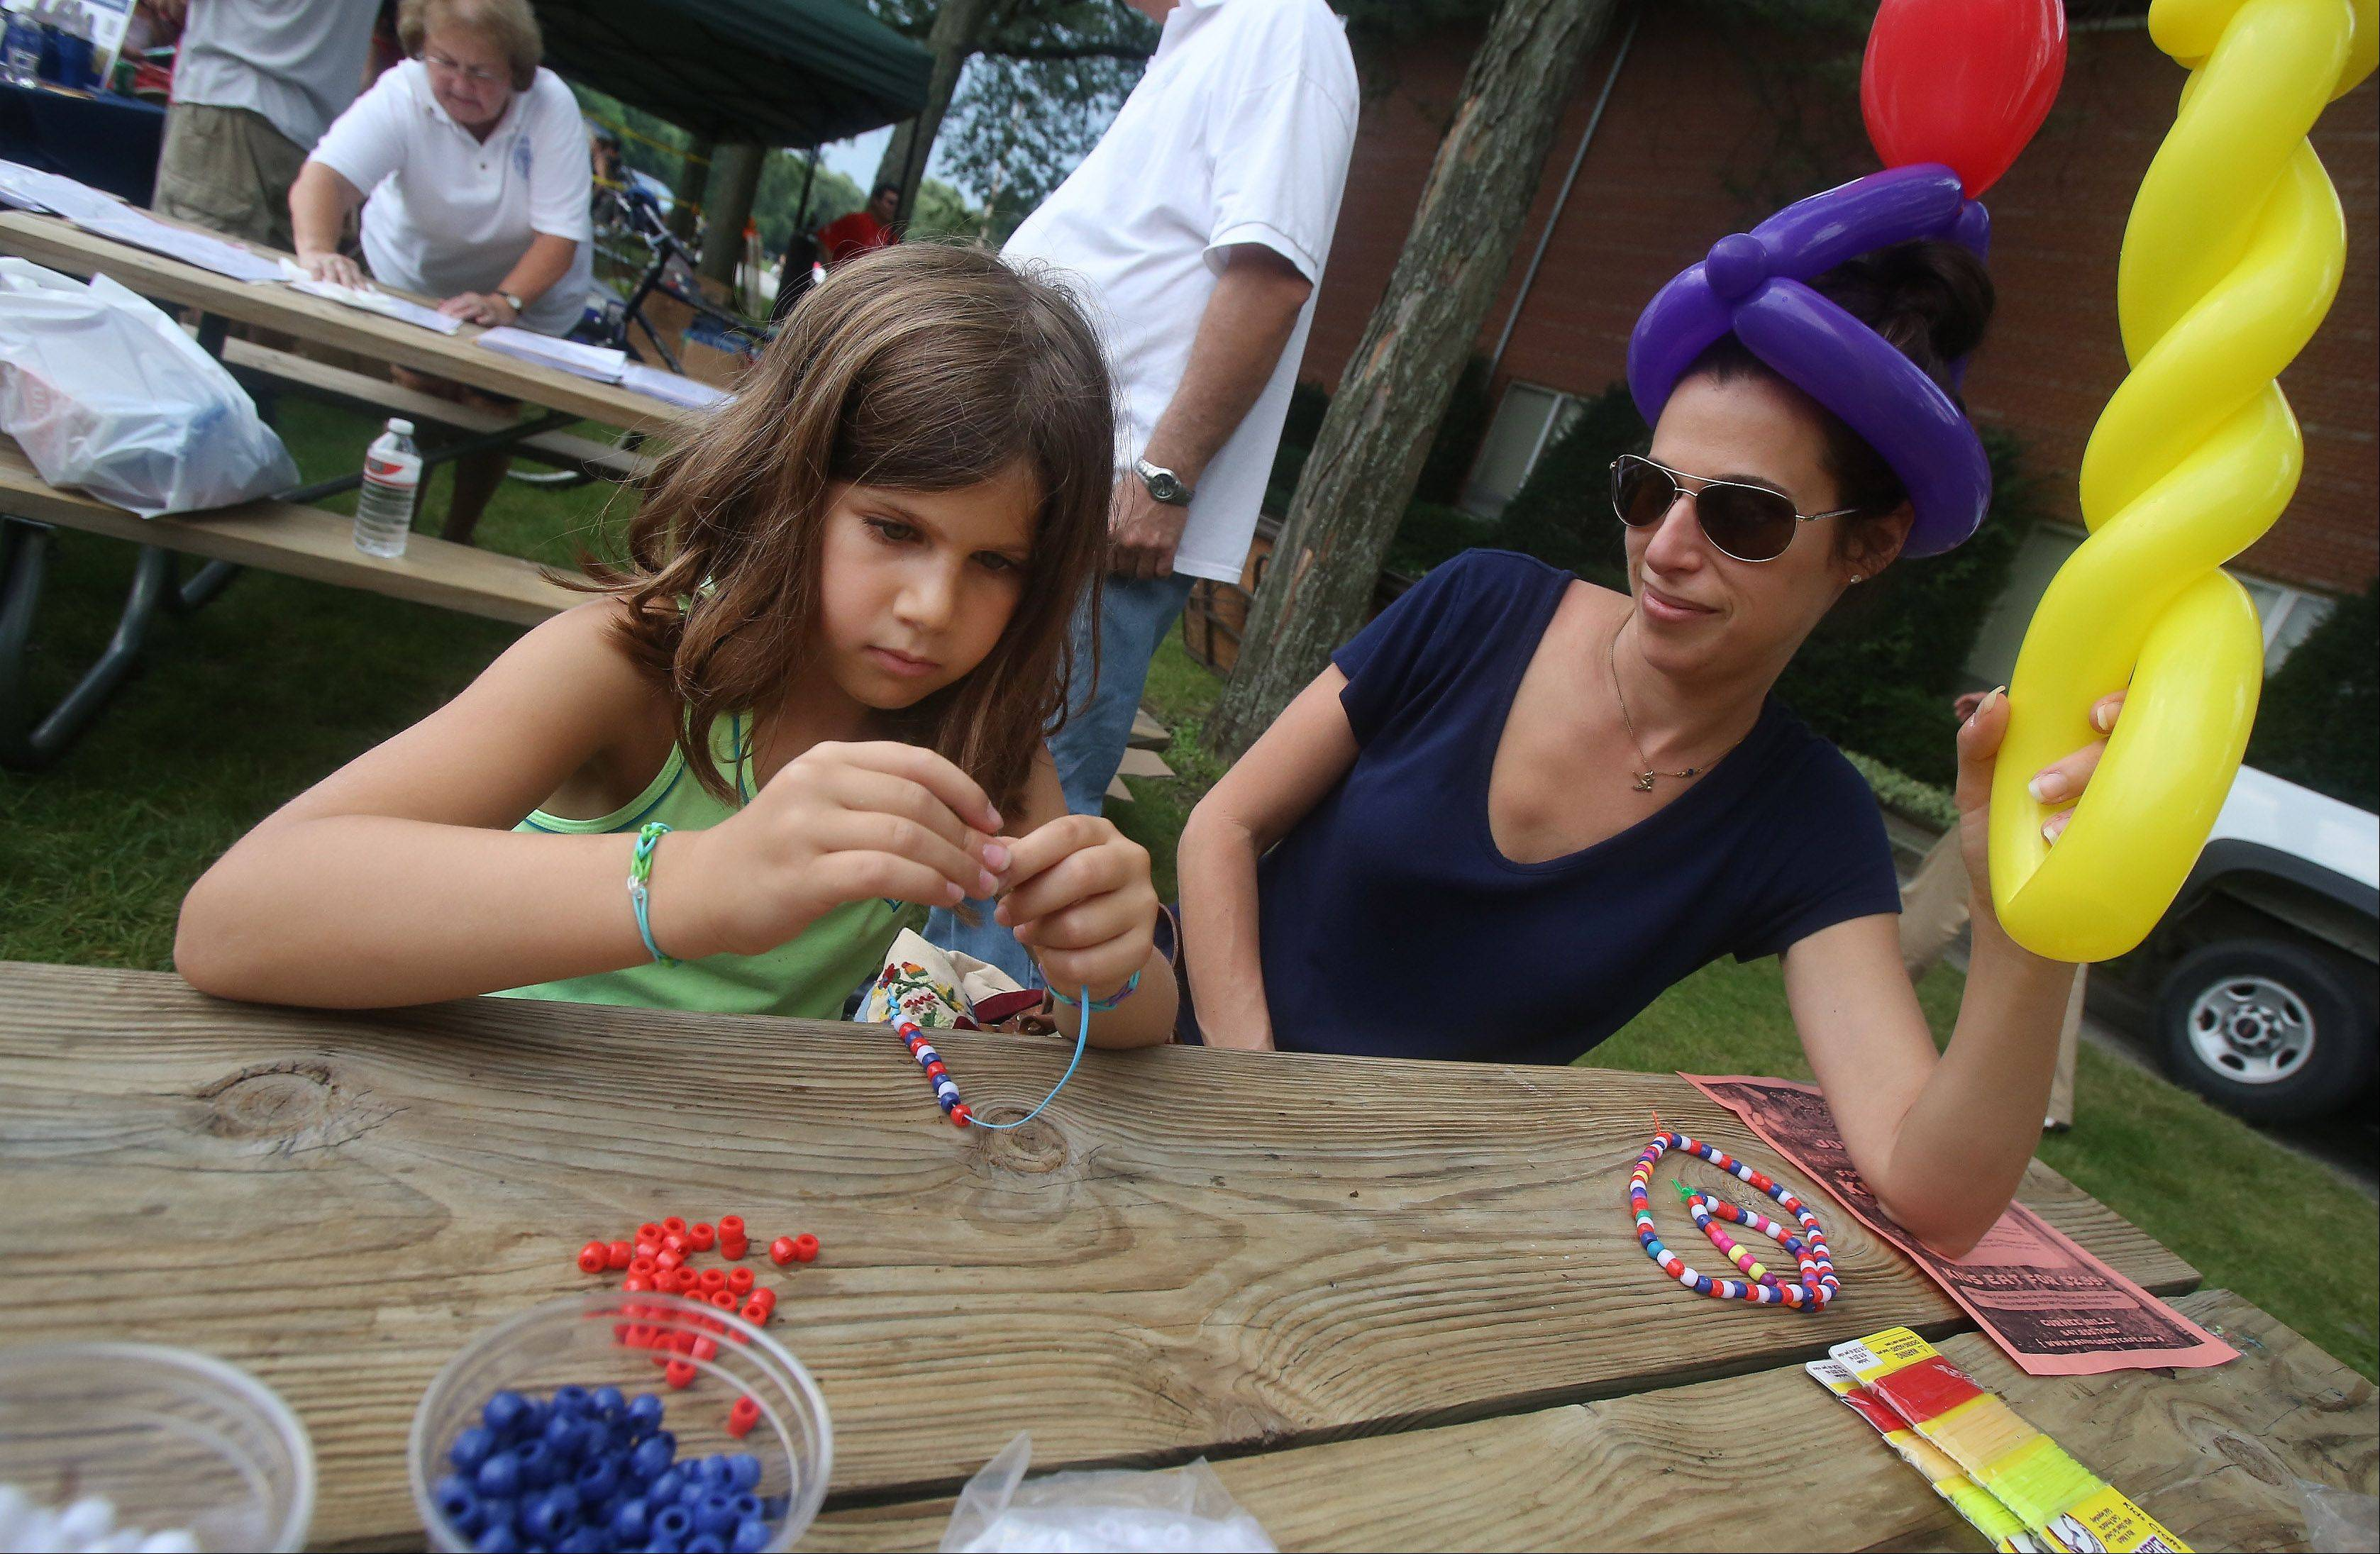 Mundelein residents Sophie Hammer, 6, makes a bead necklace with her mom, Laura, during the Mundelein National Night Out Tuesday at Kracklauer Park. The event offered a dunk tank, games, food, a chance to meet police officers and more.